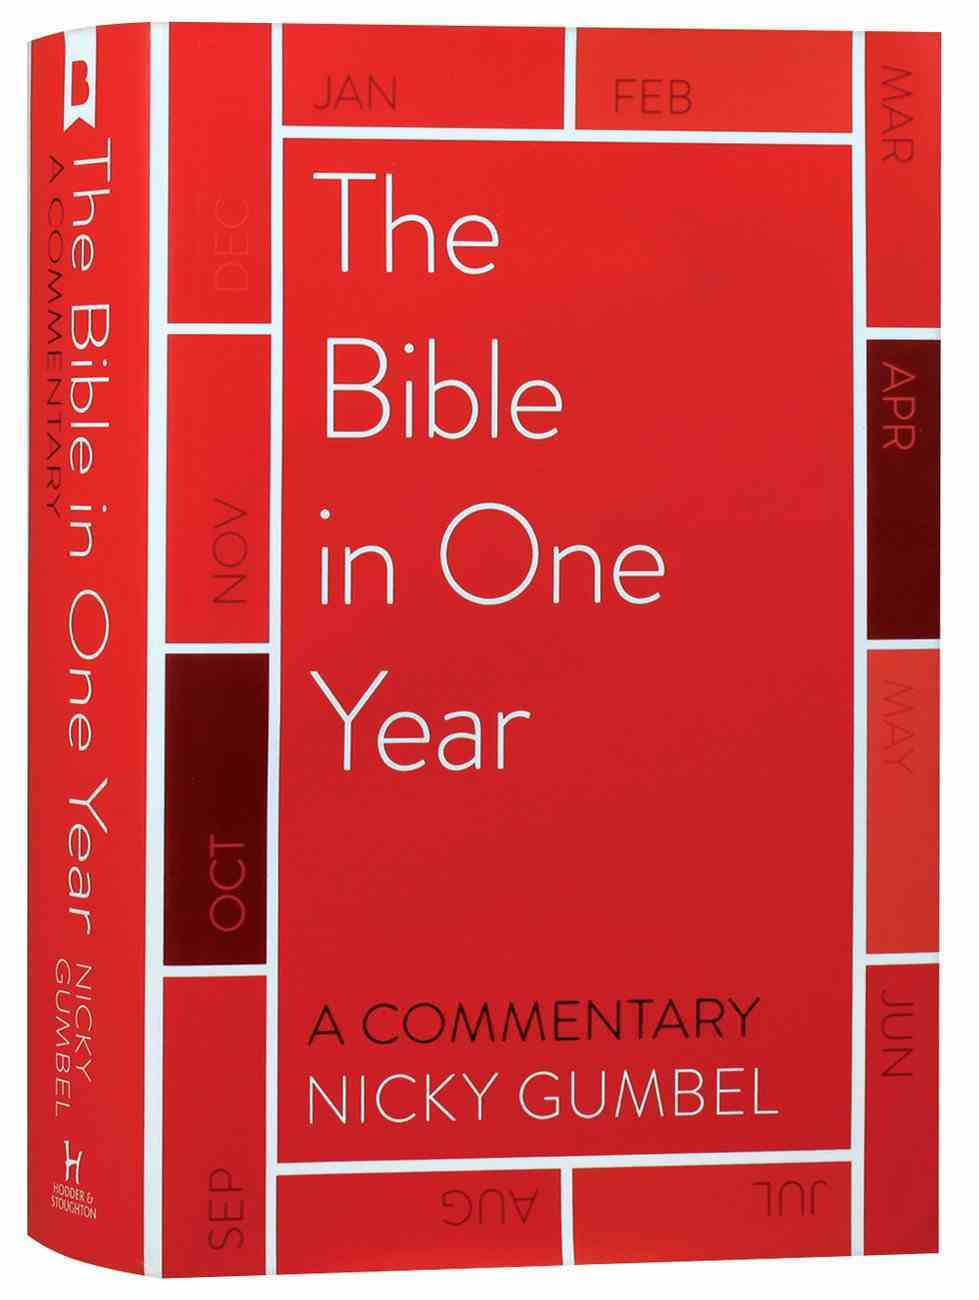 NIV Bible in One Year Commentary By Nicky Gumbel Hardback